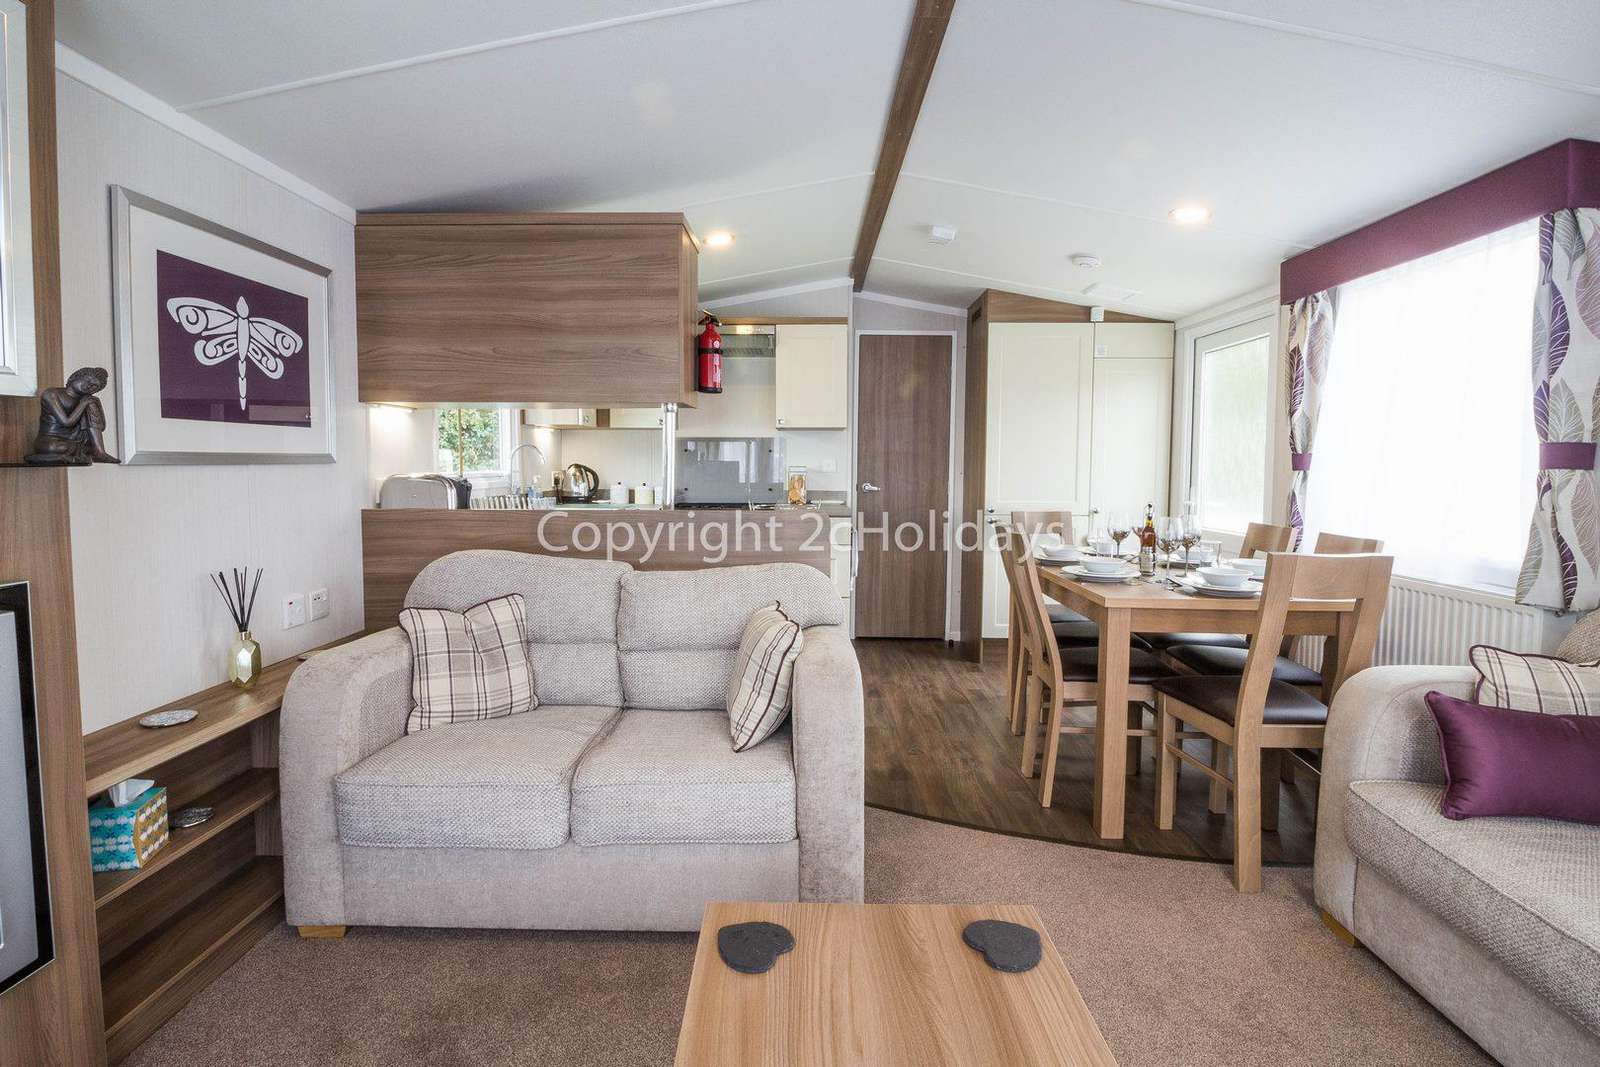 Hopton Holiday Village, in Norfolk